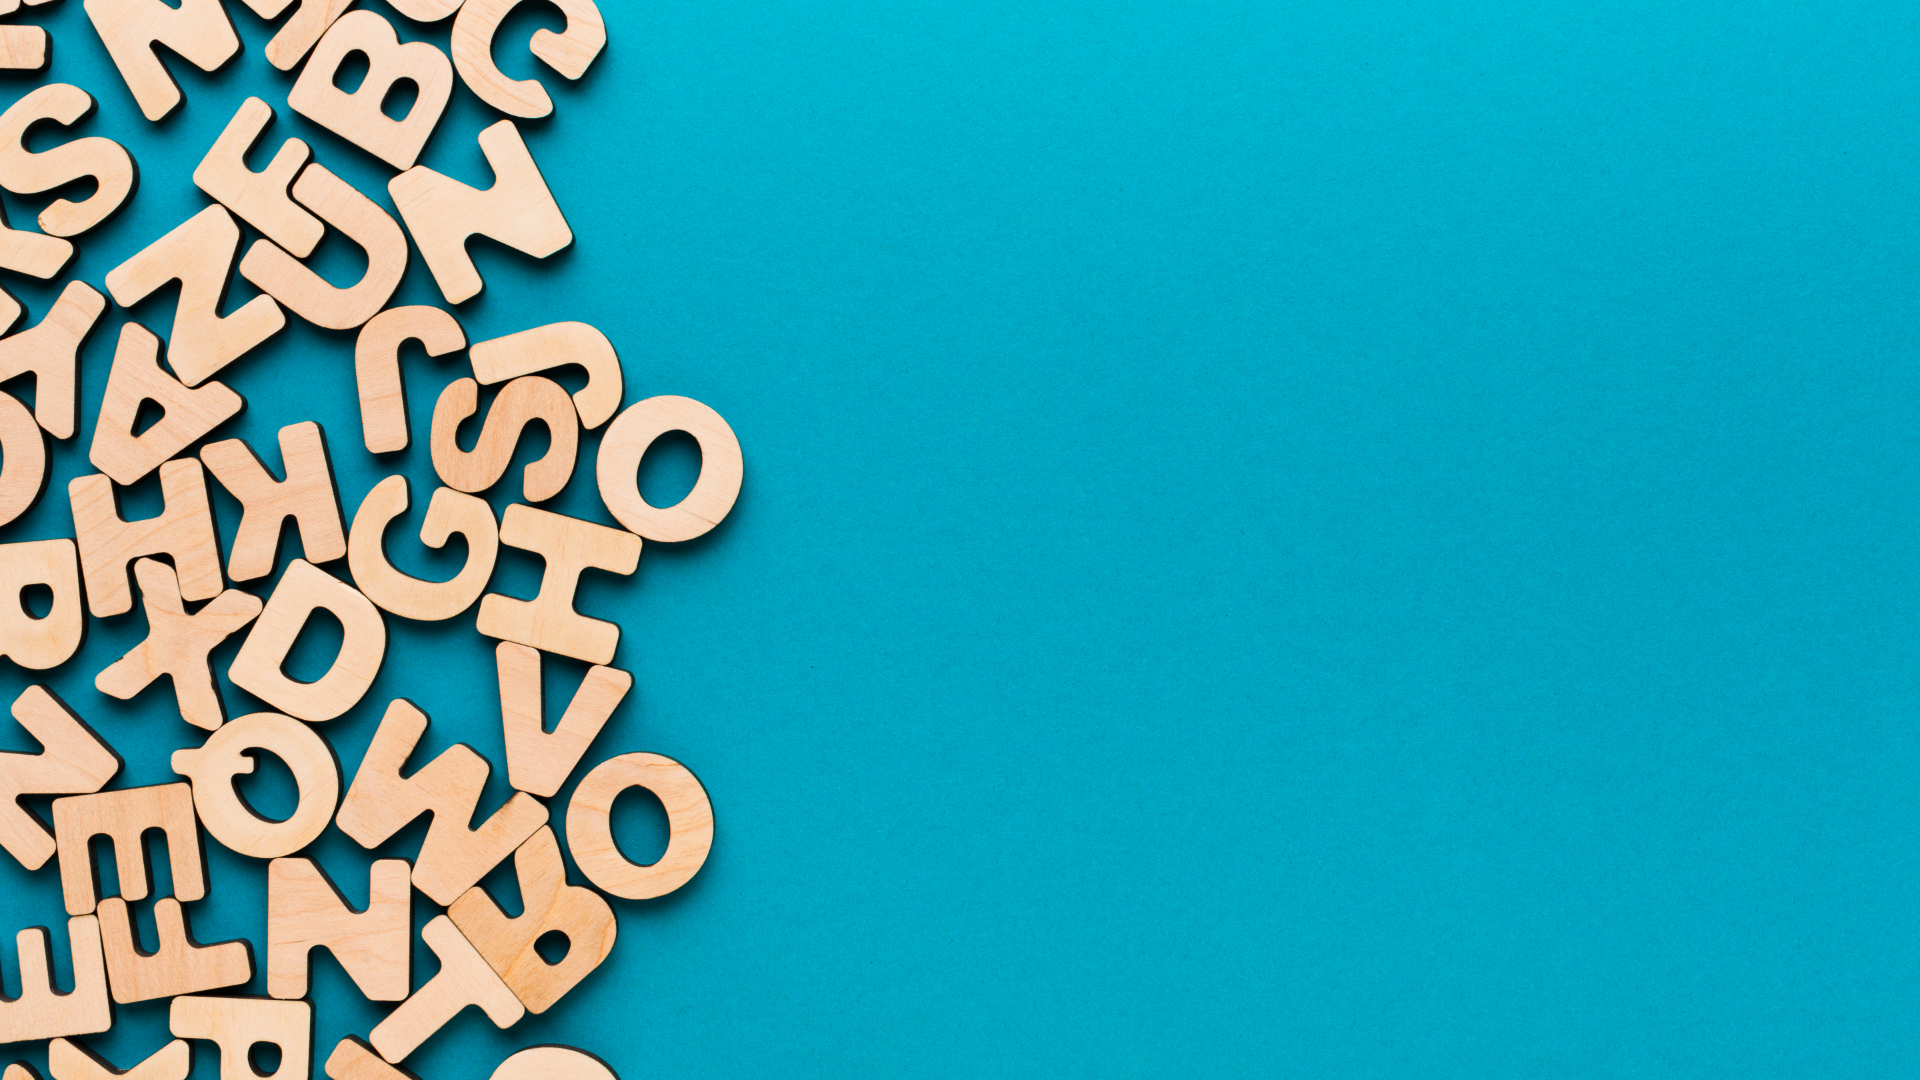 turquoise background with random wooden letters